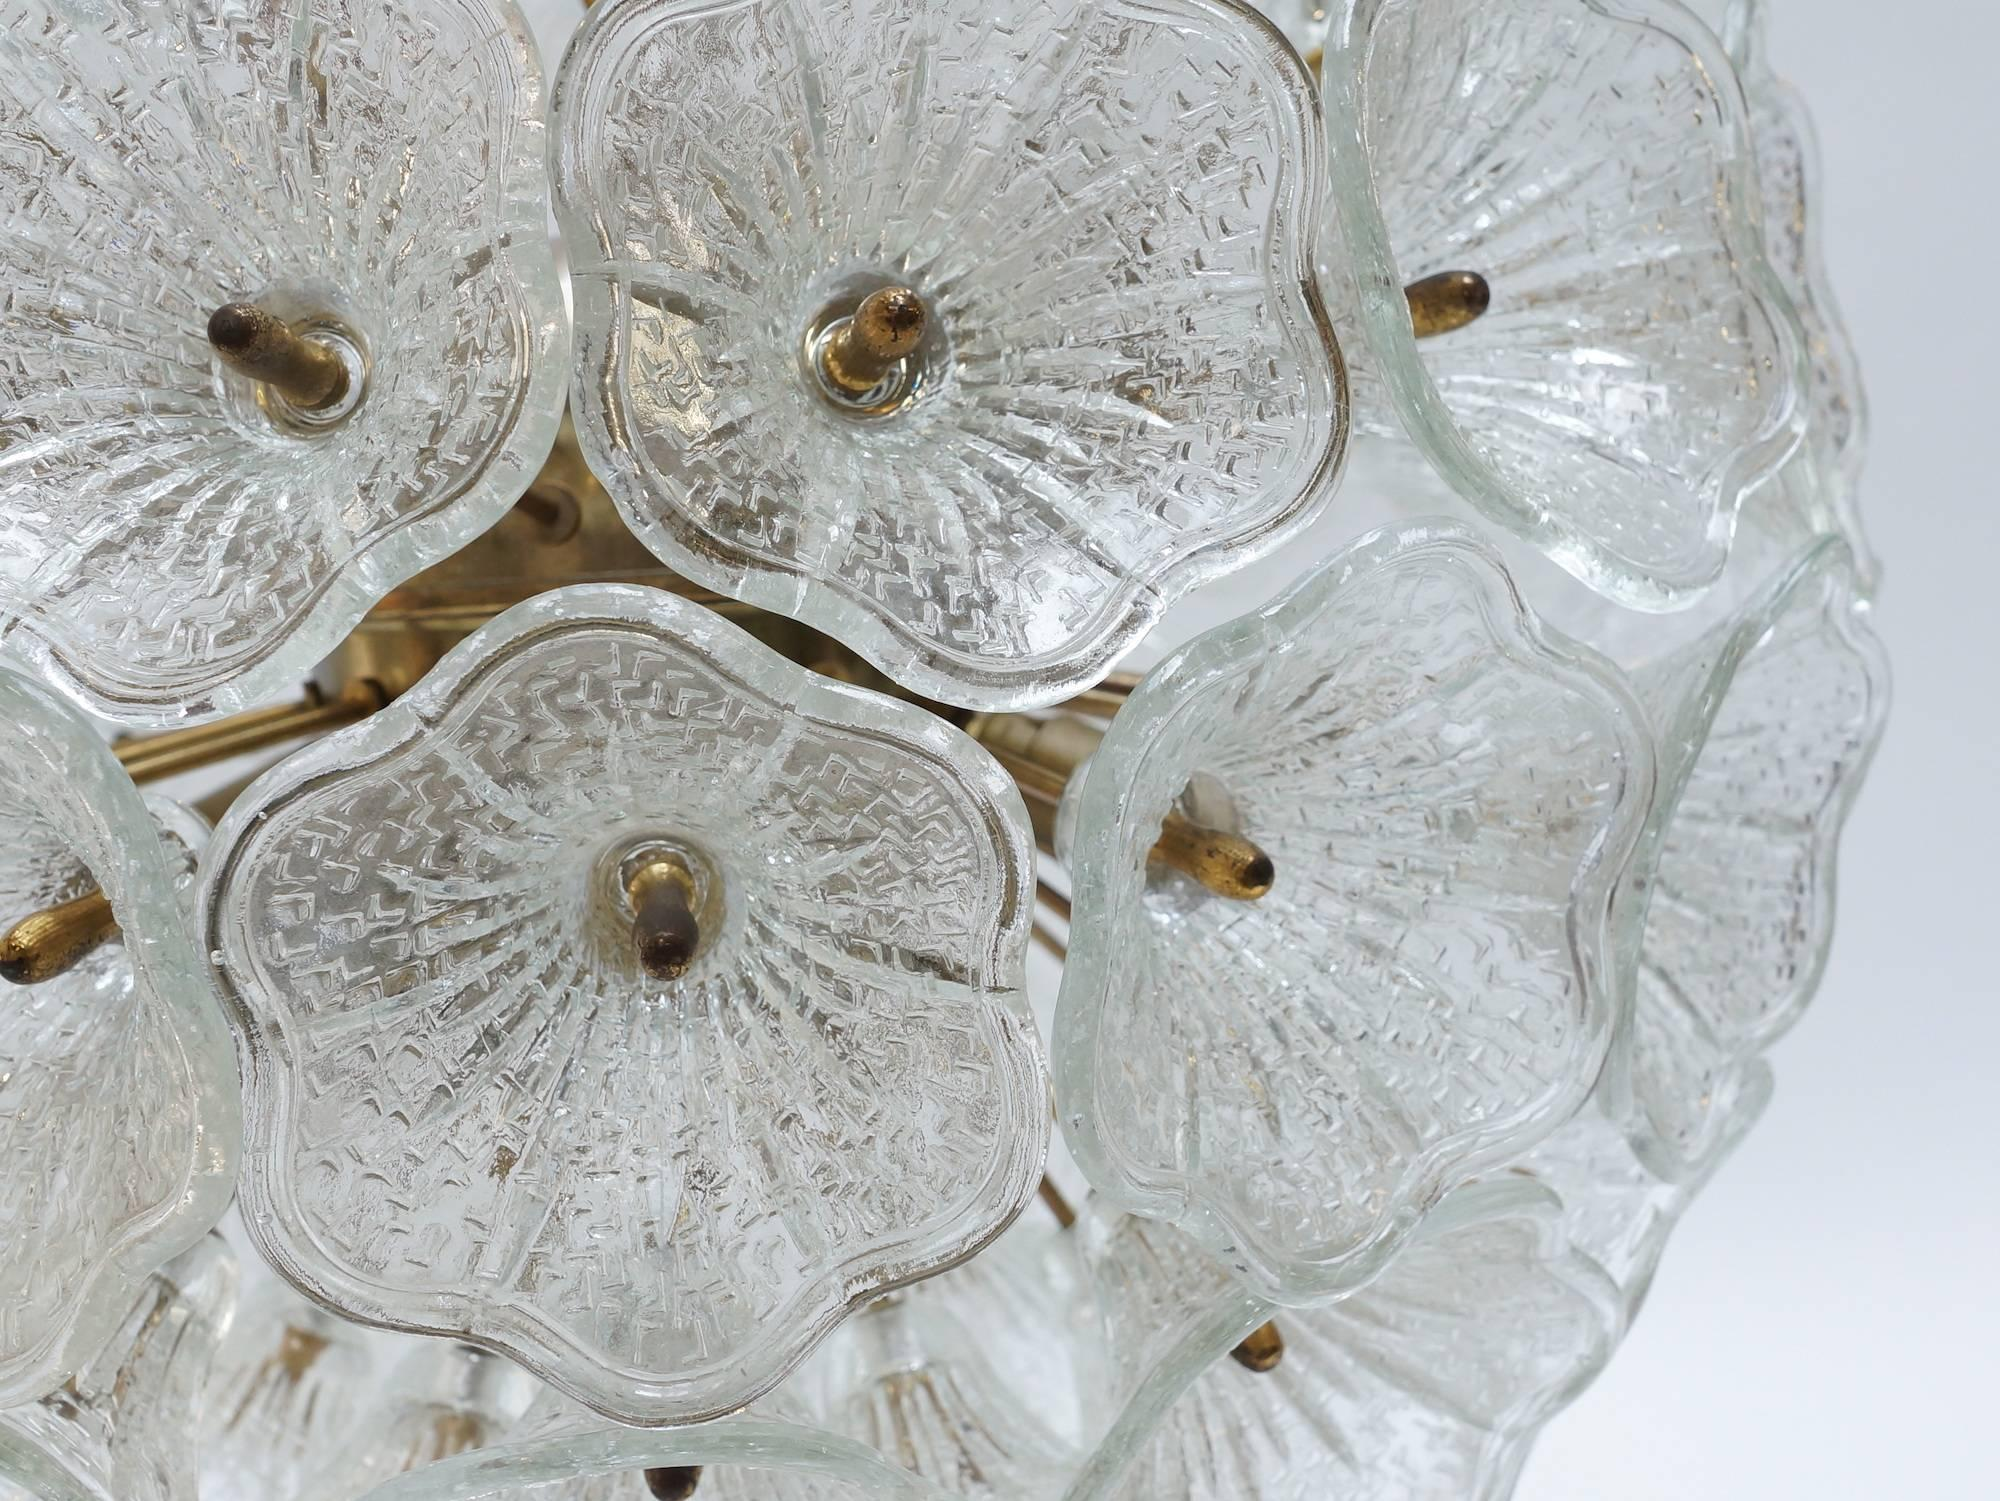 Brass and glass murano glass flower chandelier italy 1960s for brass and glass murano glass flower chandelier italy 1960s for sale at 1stdibs arubaitofo Image collections